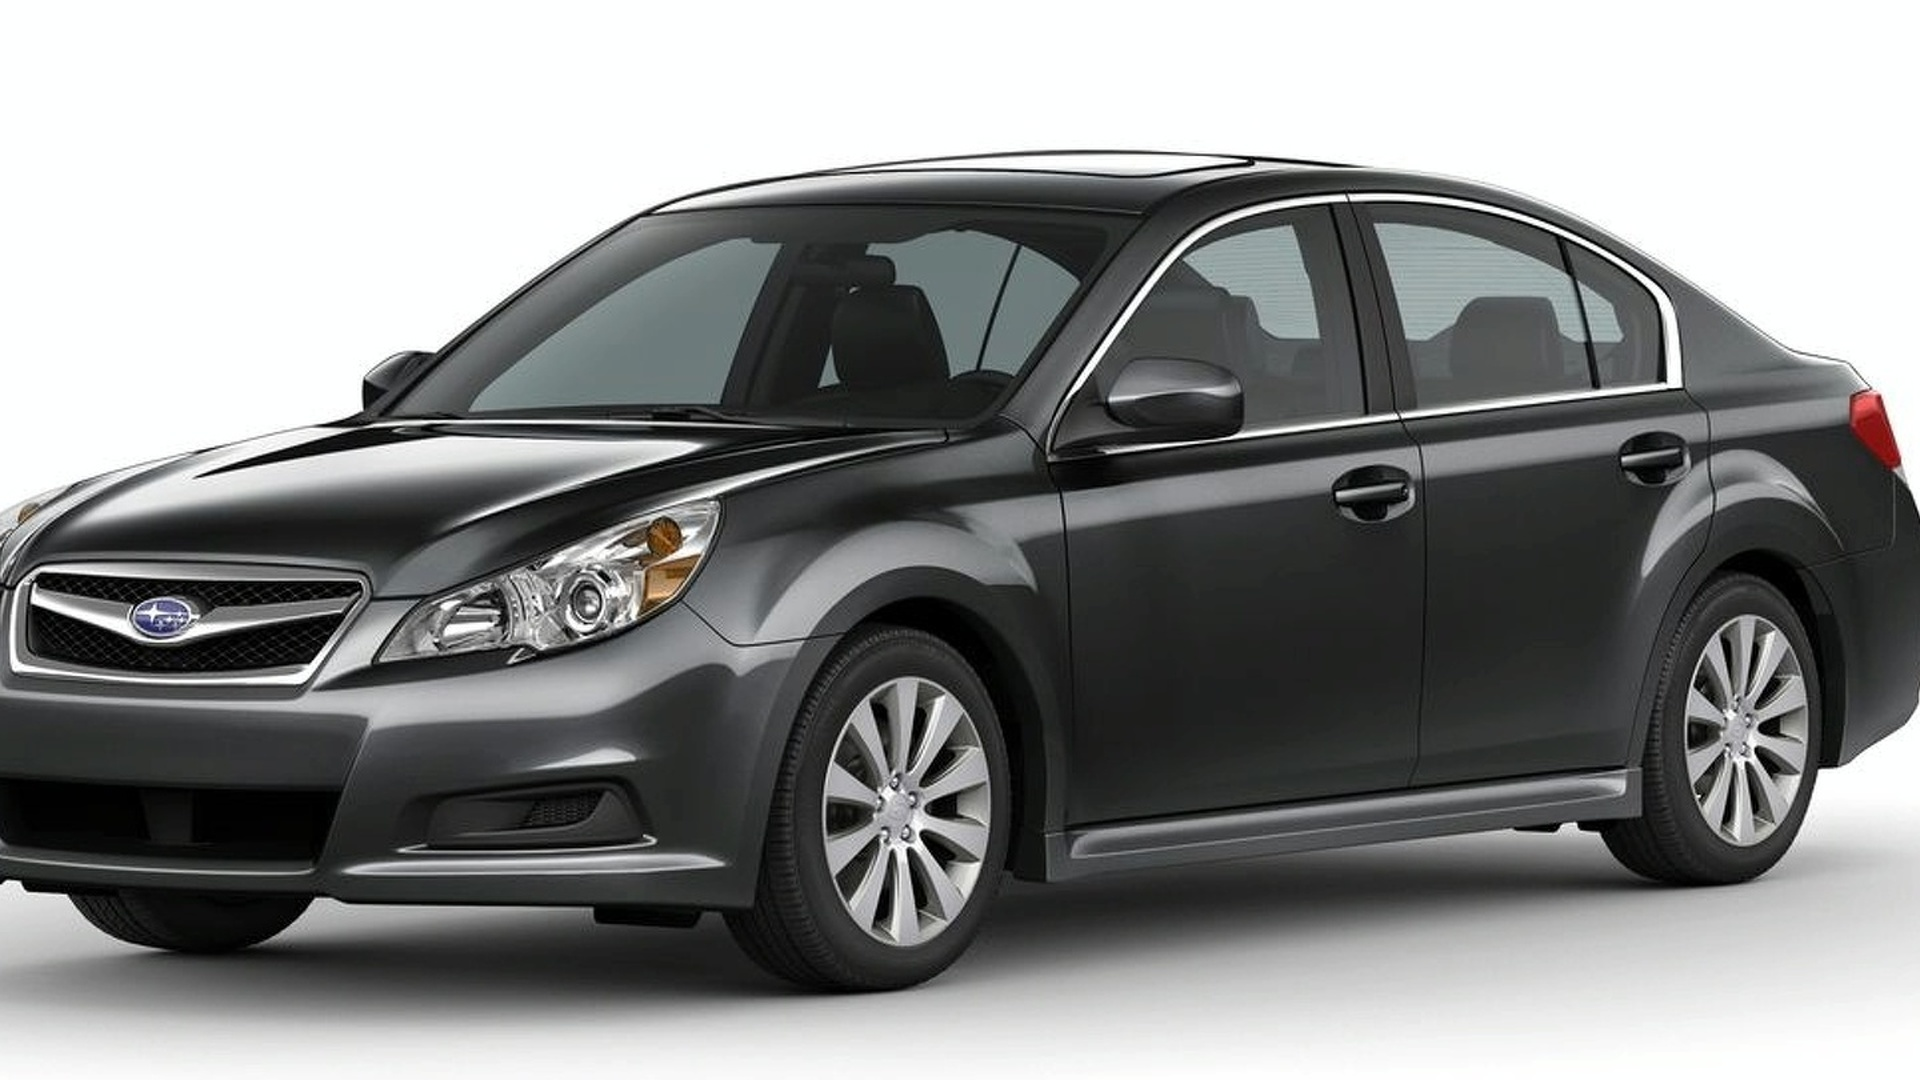 All-New Subaru Legacy Sedan Unveiled Prior to New York Auto